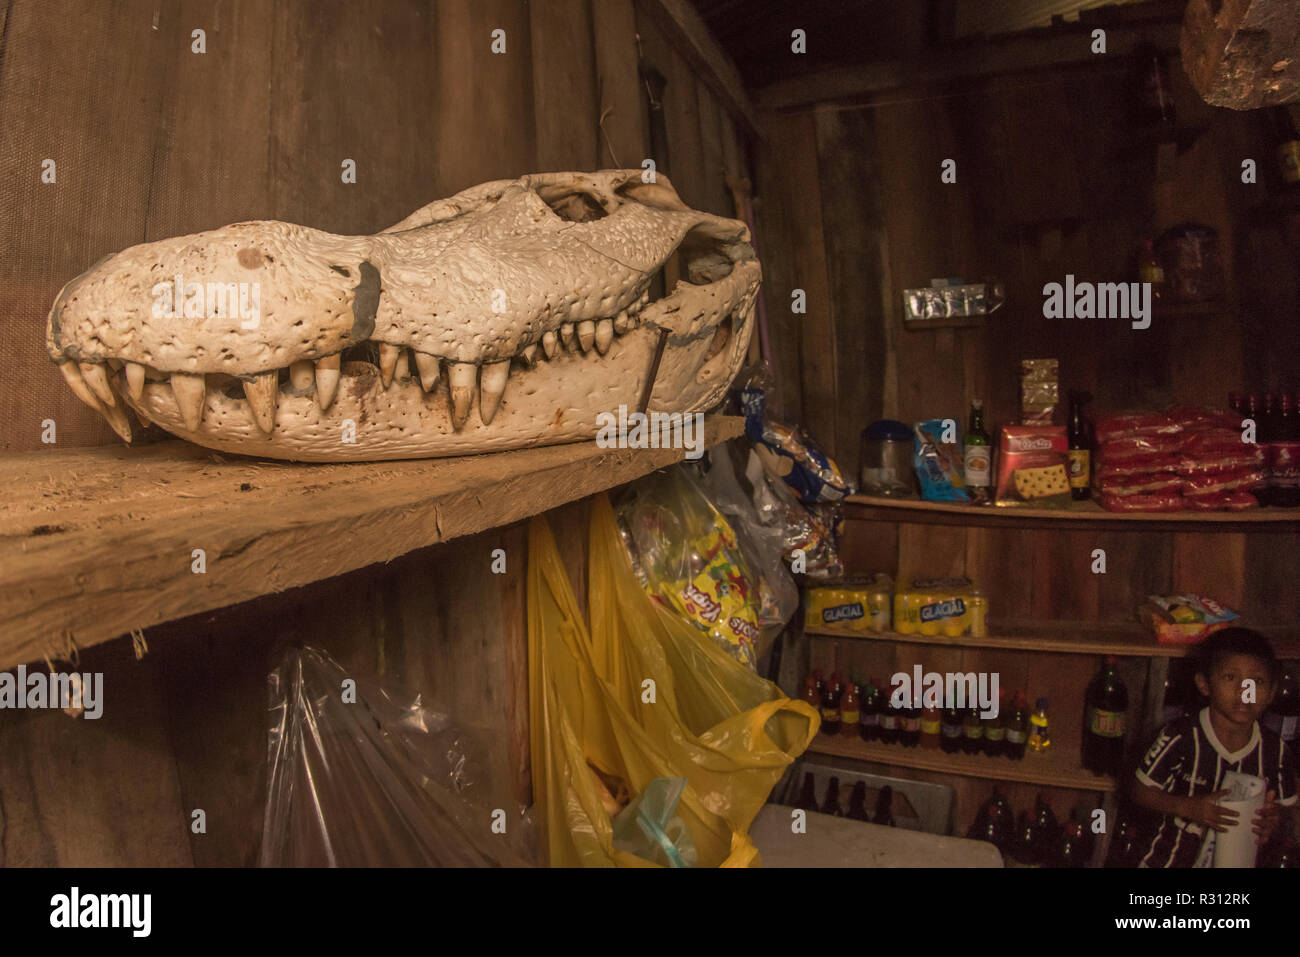 The skull of a huge black caiman (Melanosuchus niger) is on display at a small store in Amazonian Colombia. Stock Photo